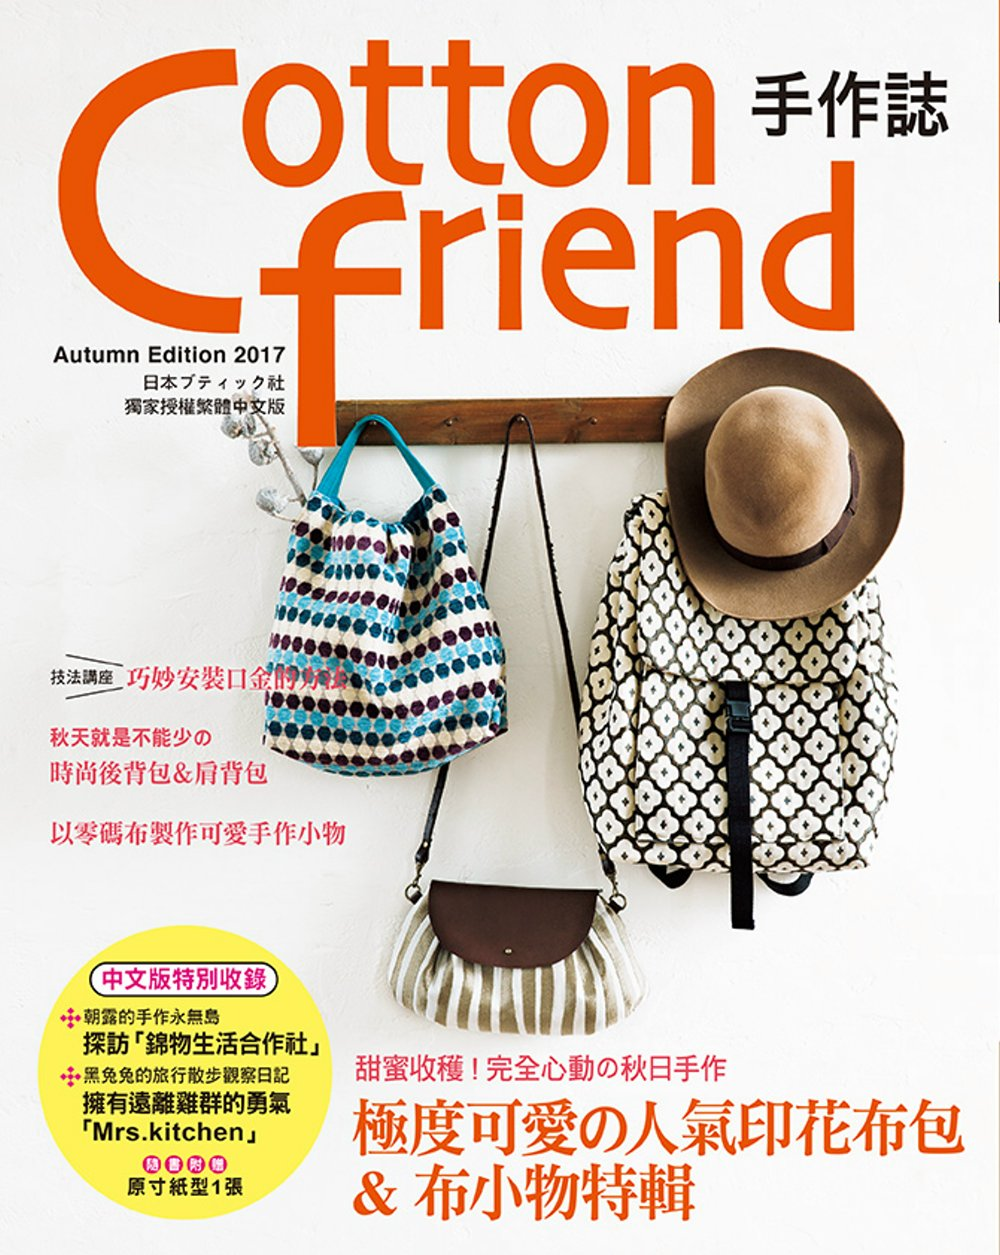 Cotton friend 手作誌38:甜蜜收穫!完全心動的秋日手作